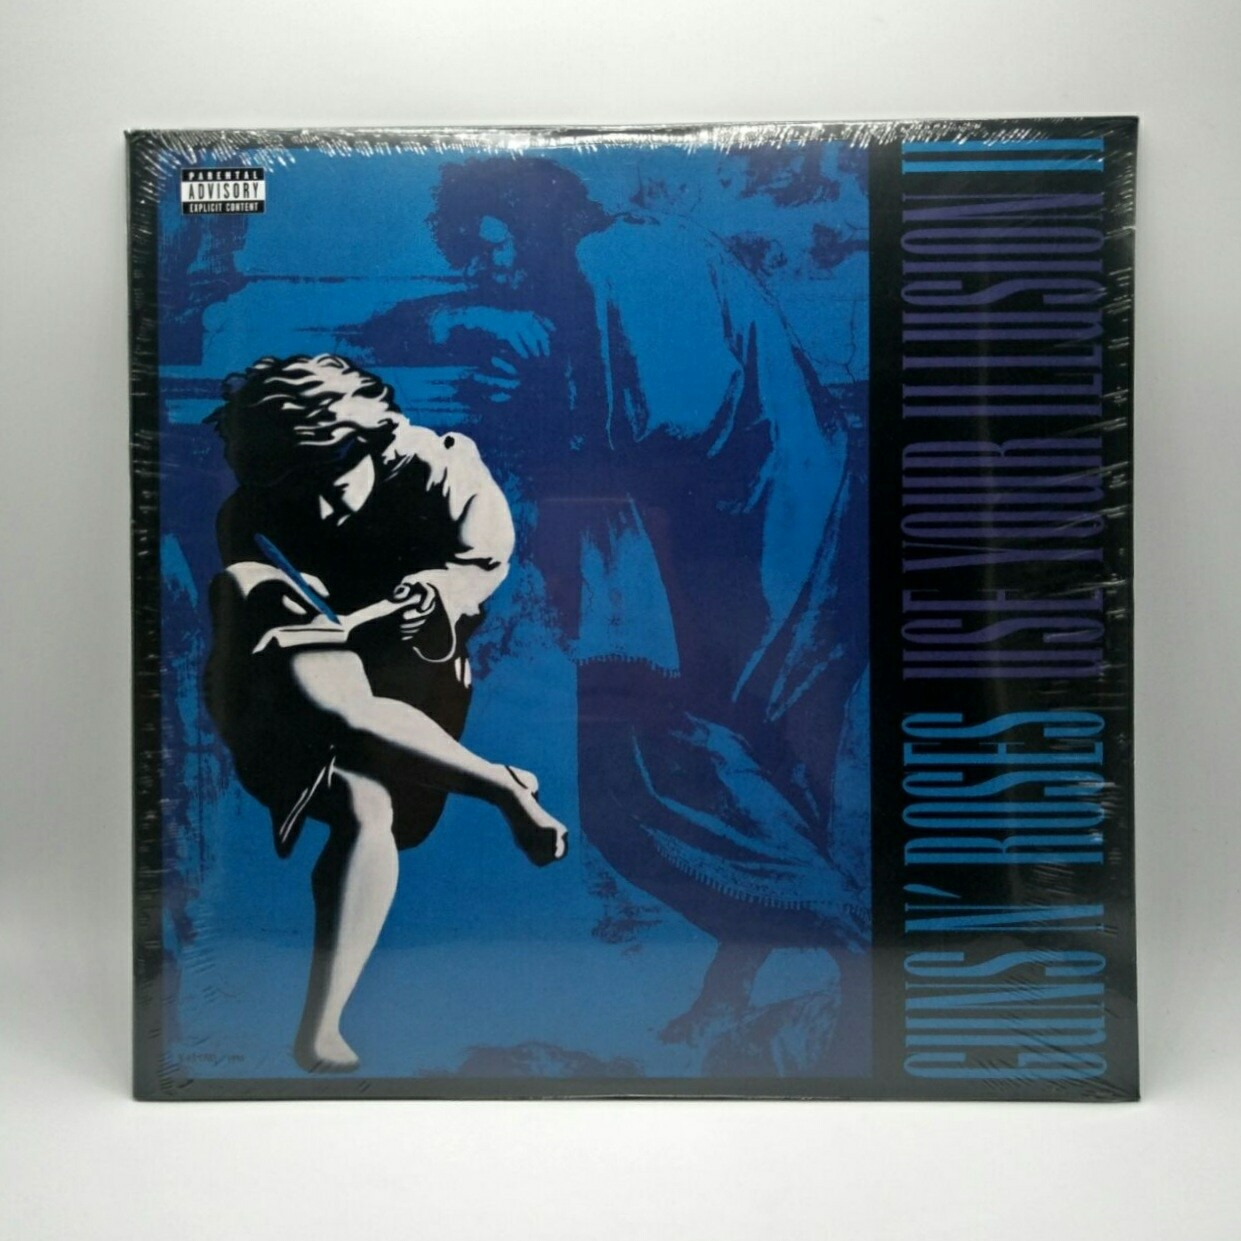 GUNS N ROSES -USE YOUR ILLUSION II- 2XLP (180 GRAM VINYL)